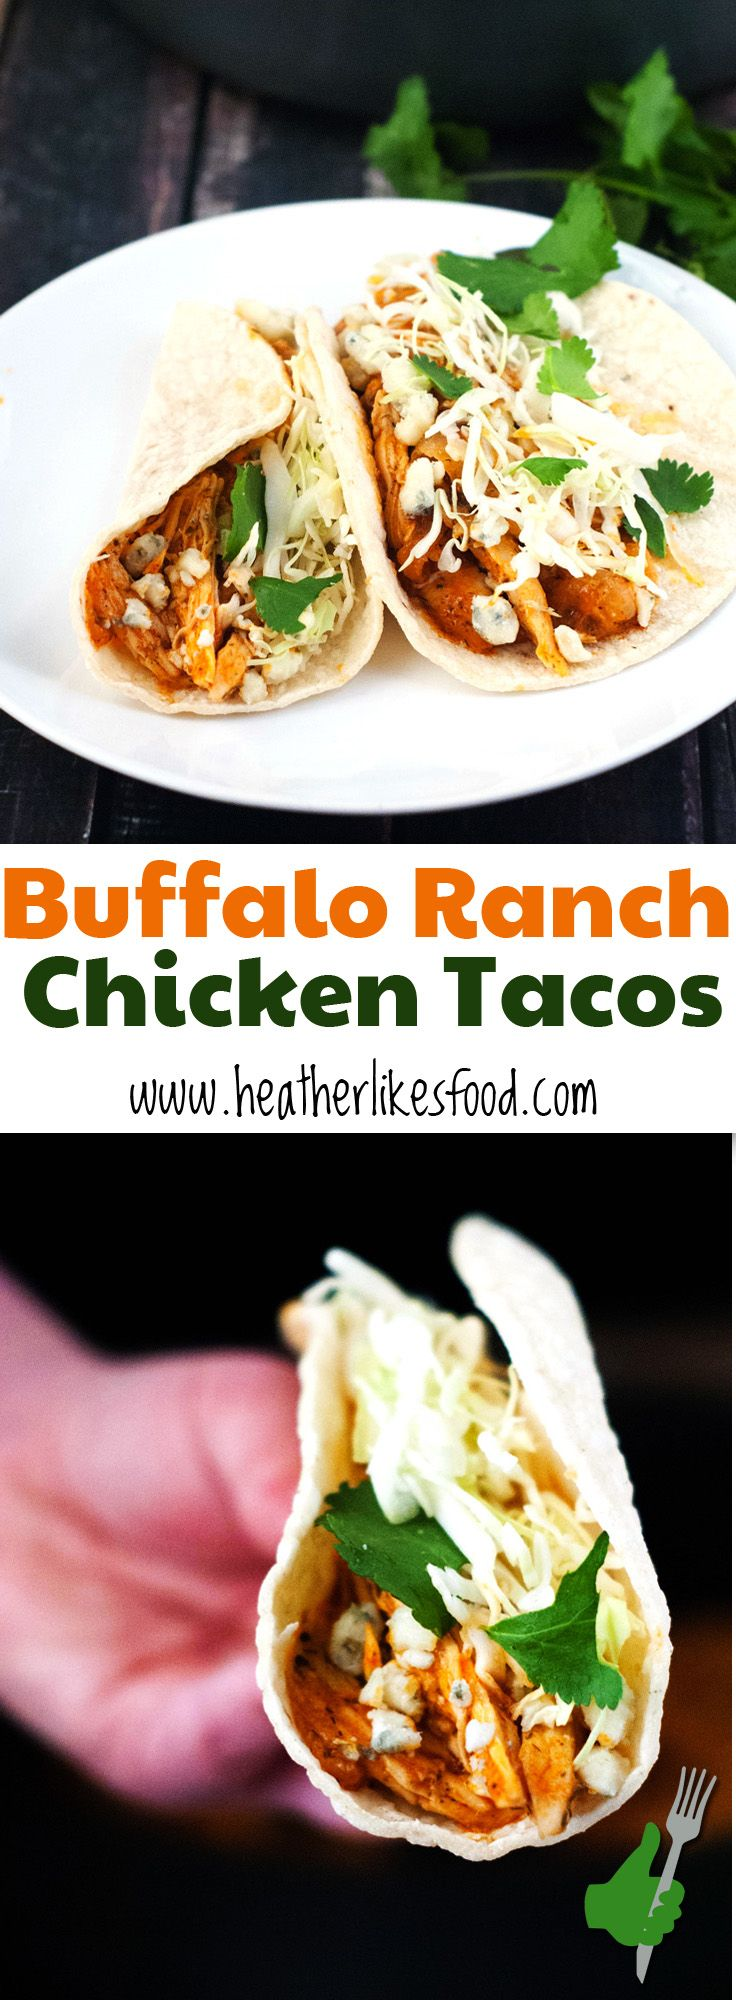 Buffalo Ranch Chicken Tacos from Heather Likes Food. If you're a fan of buffalo chicken these tacos are a must try! #ad #FosterFarmsFresh